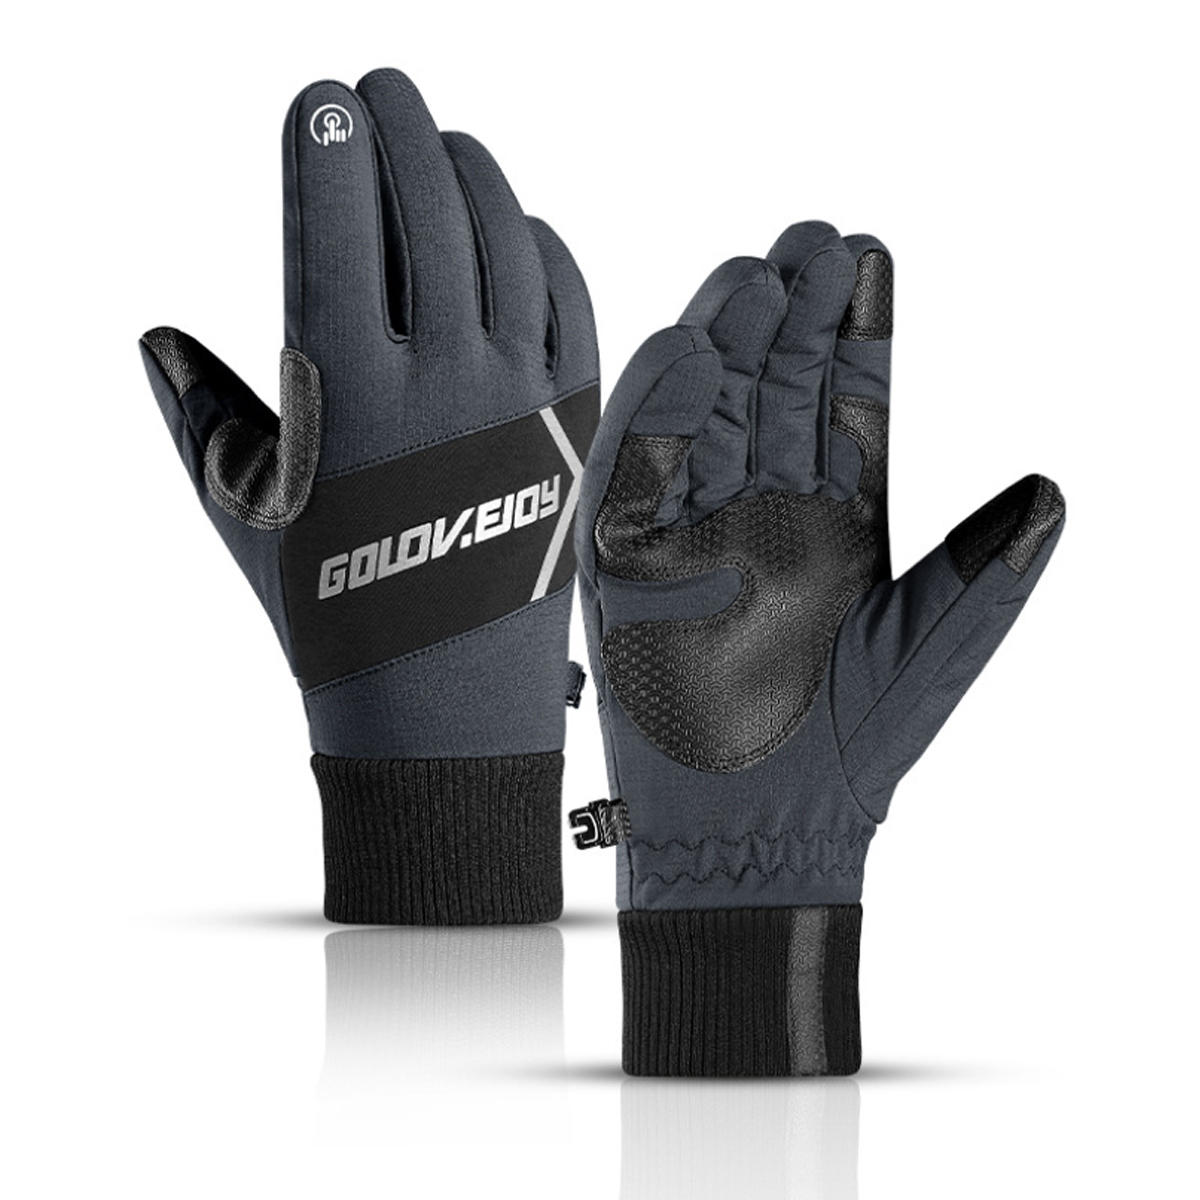 Winter Warm Thermal Touch Screen Gloves Ski Snow Snowboard Cycling WaterproofTouchscreen фото